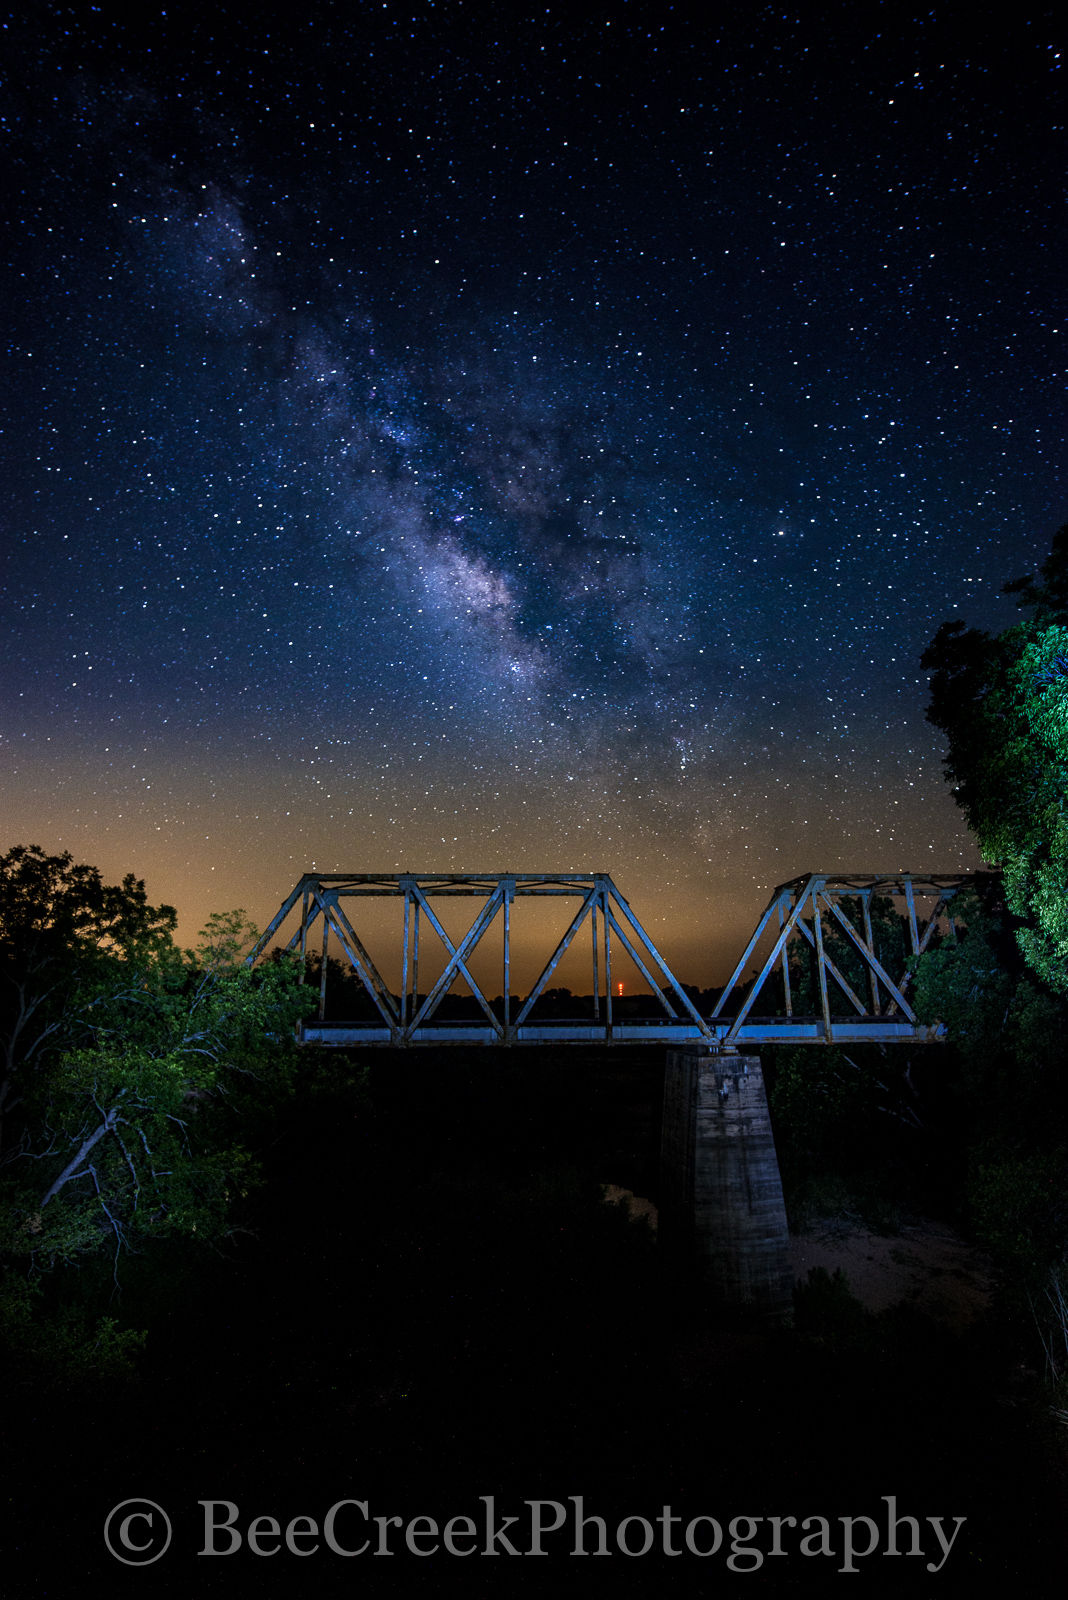 Fine Art photo, Night Stars over railroad bridge, astronomy photography, celestial, dark skies, galaxy, galaxy over bridge, landscape, light pollution, milkway over texas railroad bridge, milky way, n, photo